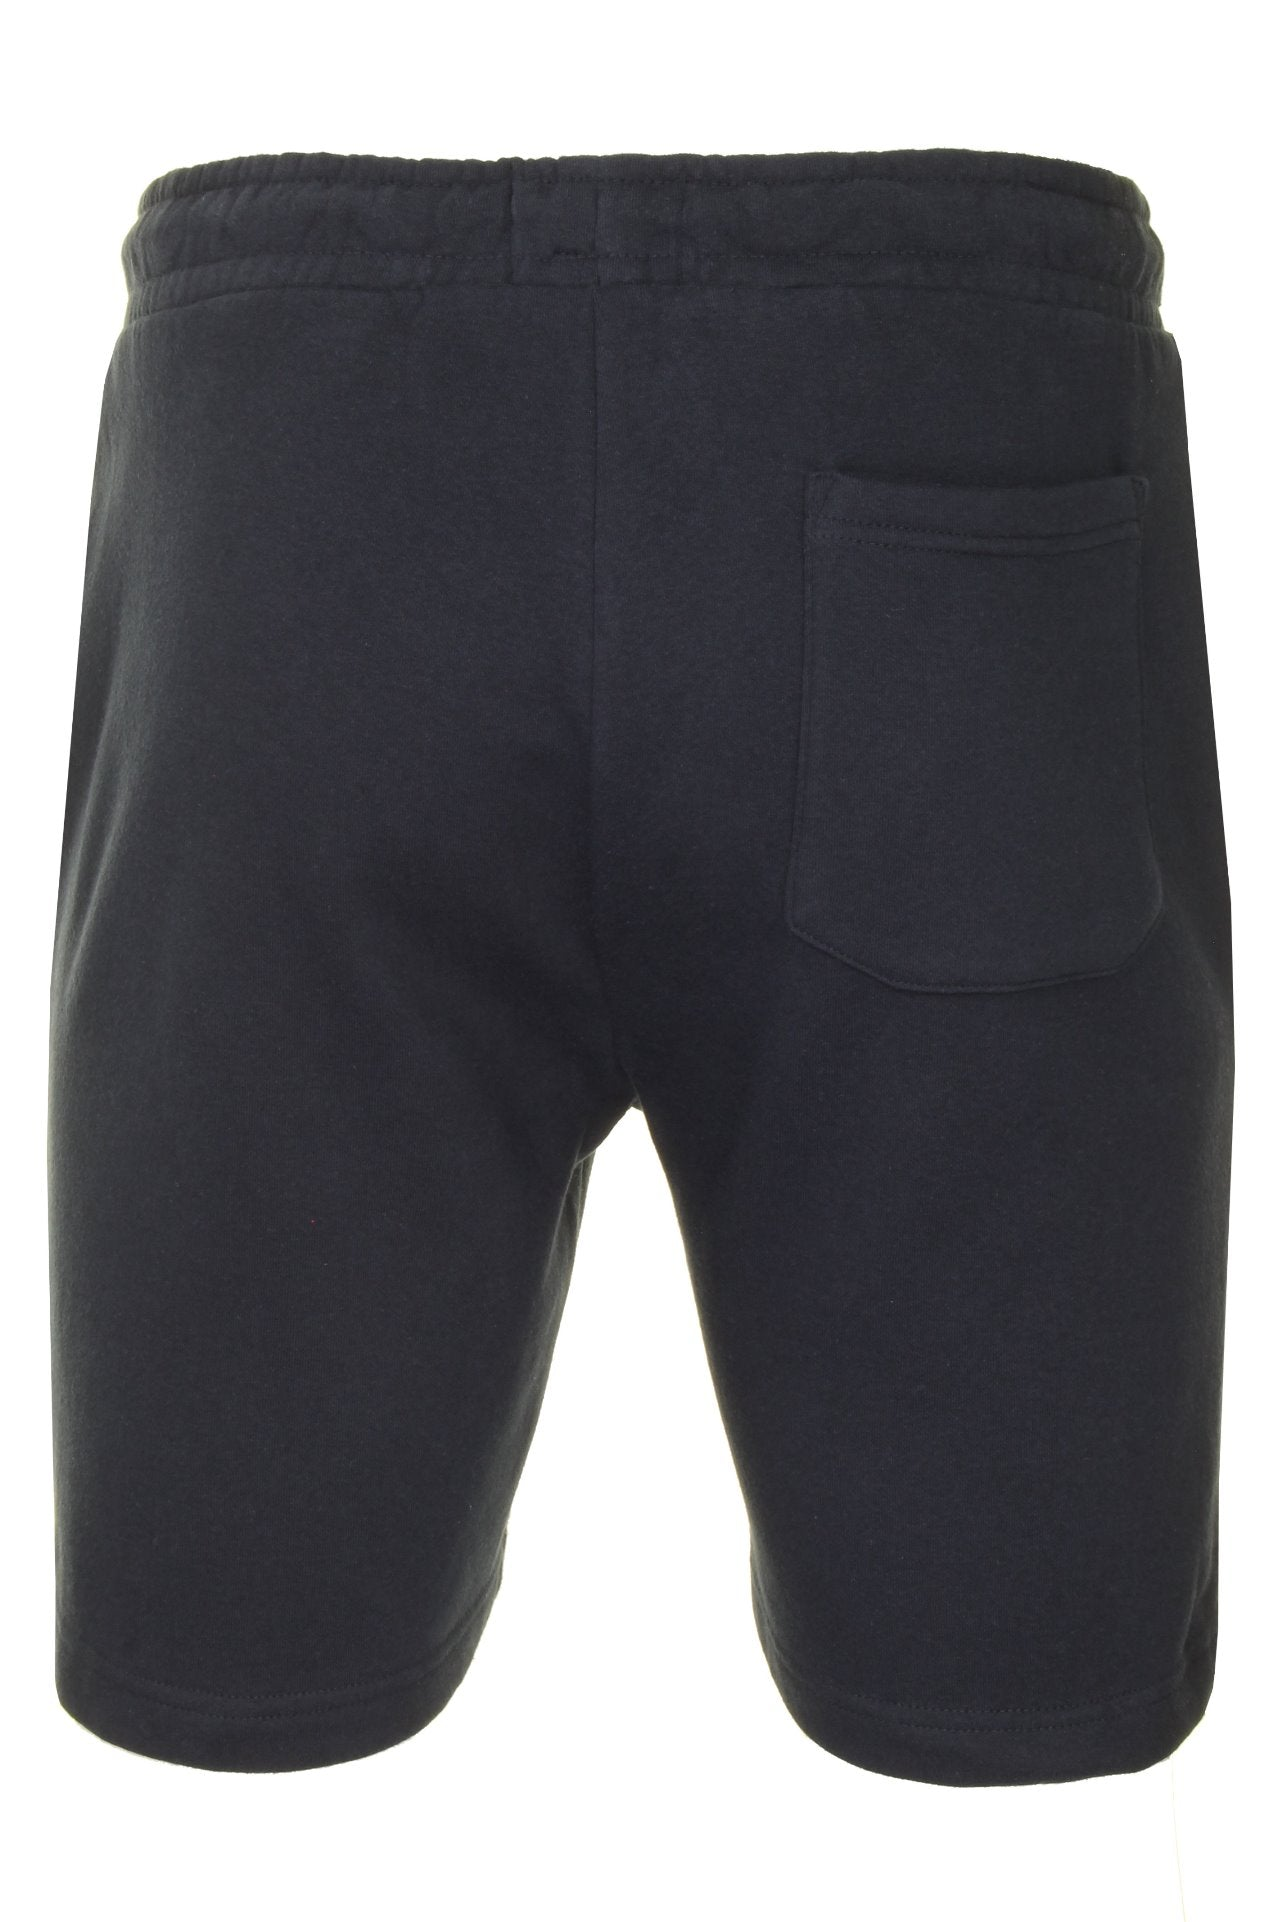 Mens Jogger Shorts by Brave Soul 'Tarley' Sports Training Summer Gym Pants_03_Mts-69Tarley_Rich Navy